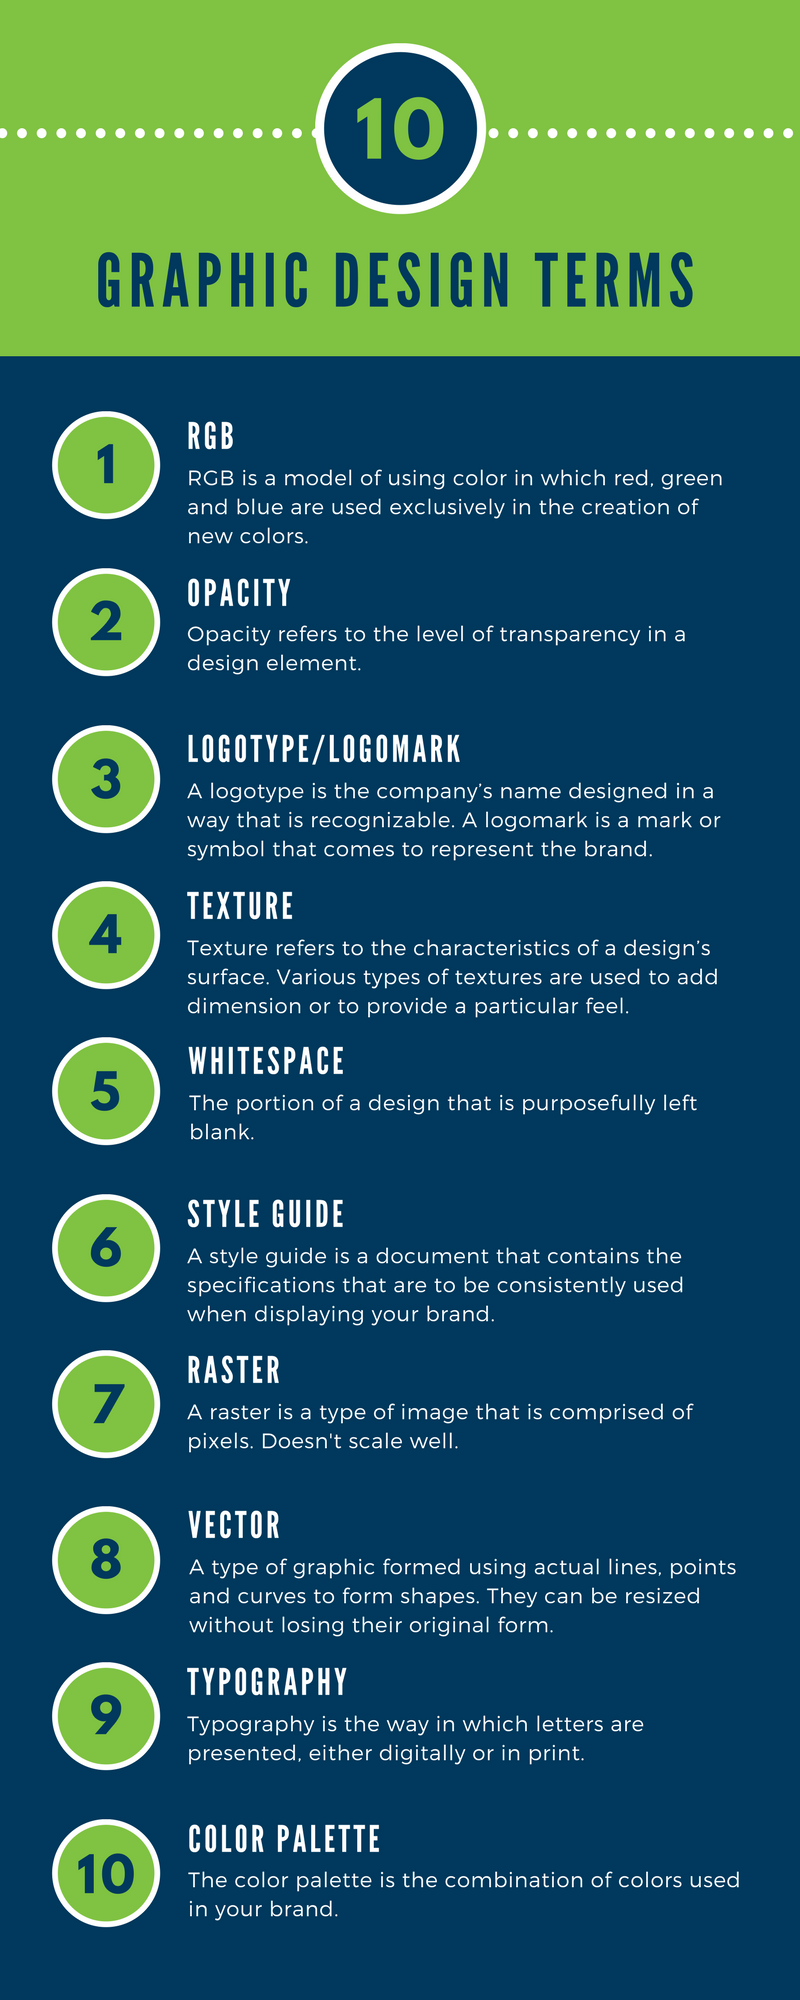 Graphic Design Terms Infographic